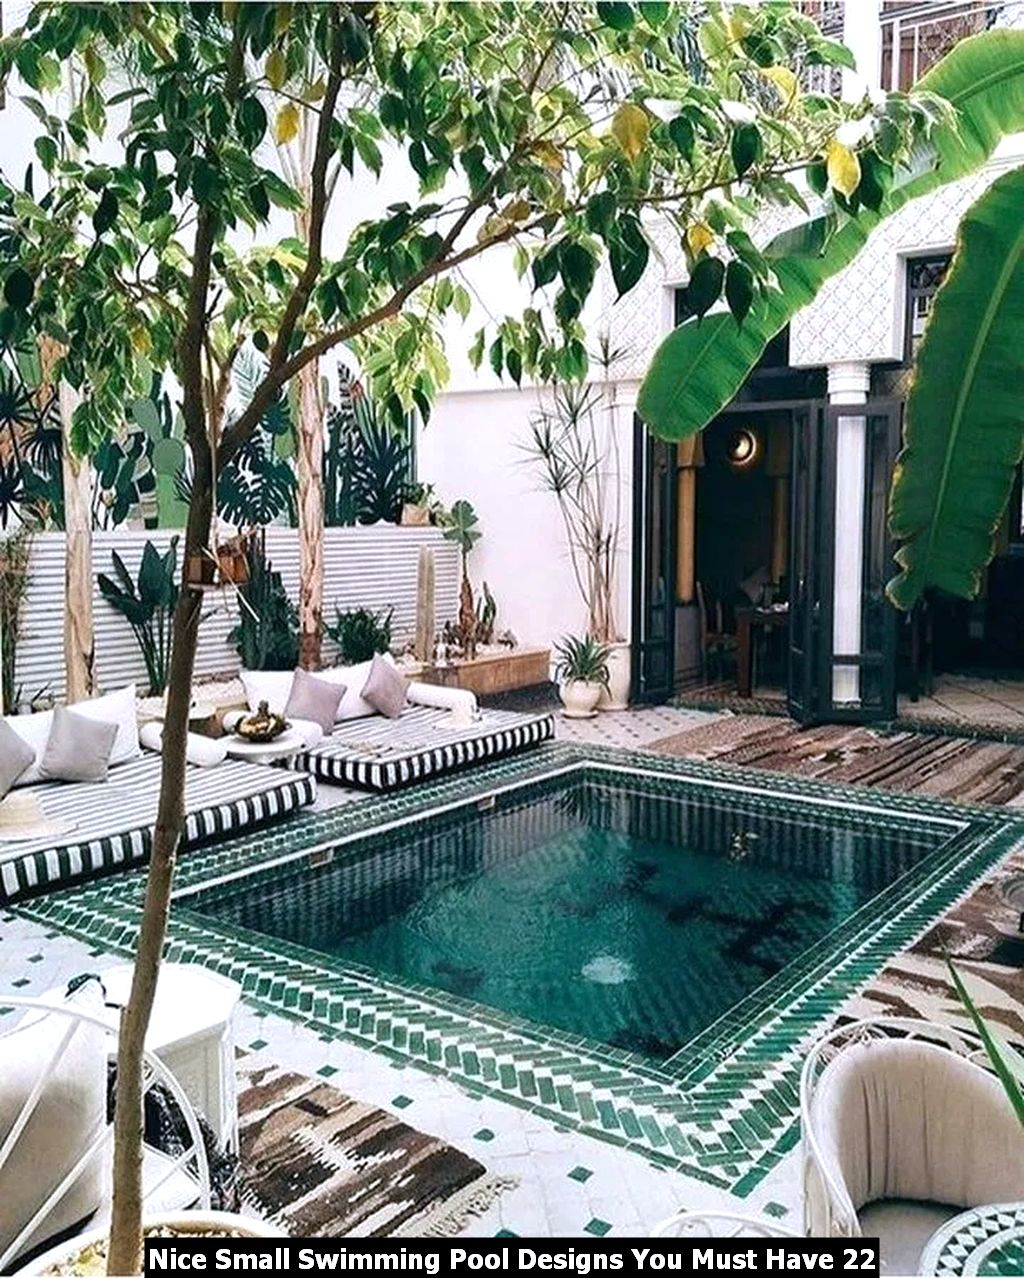 Nice Small Swimming Pool Designs You Must Have 22